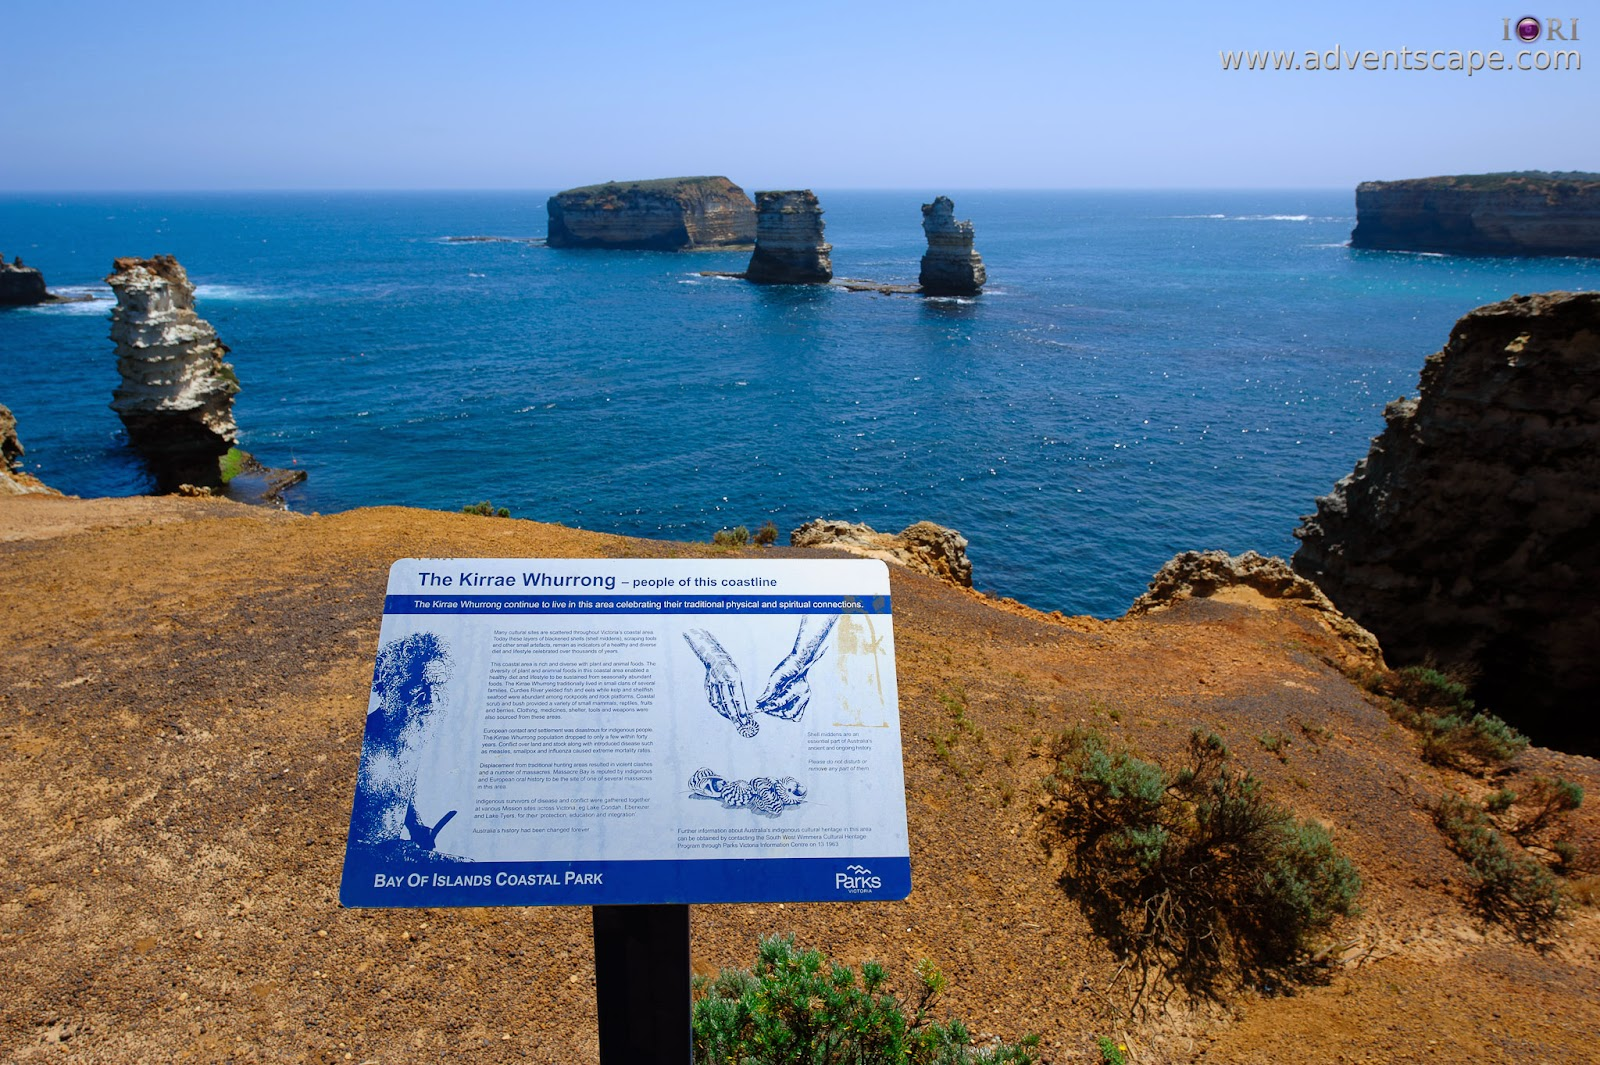 australia, Australian Landscape Photographer, Bay of Islands, Great Ocean Road, Peterborough, Philip Avellana, victoria, Warrnambool, rock formation, coastline, Apollo Bay, sediments, signage, lookout